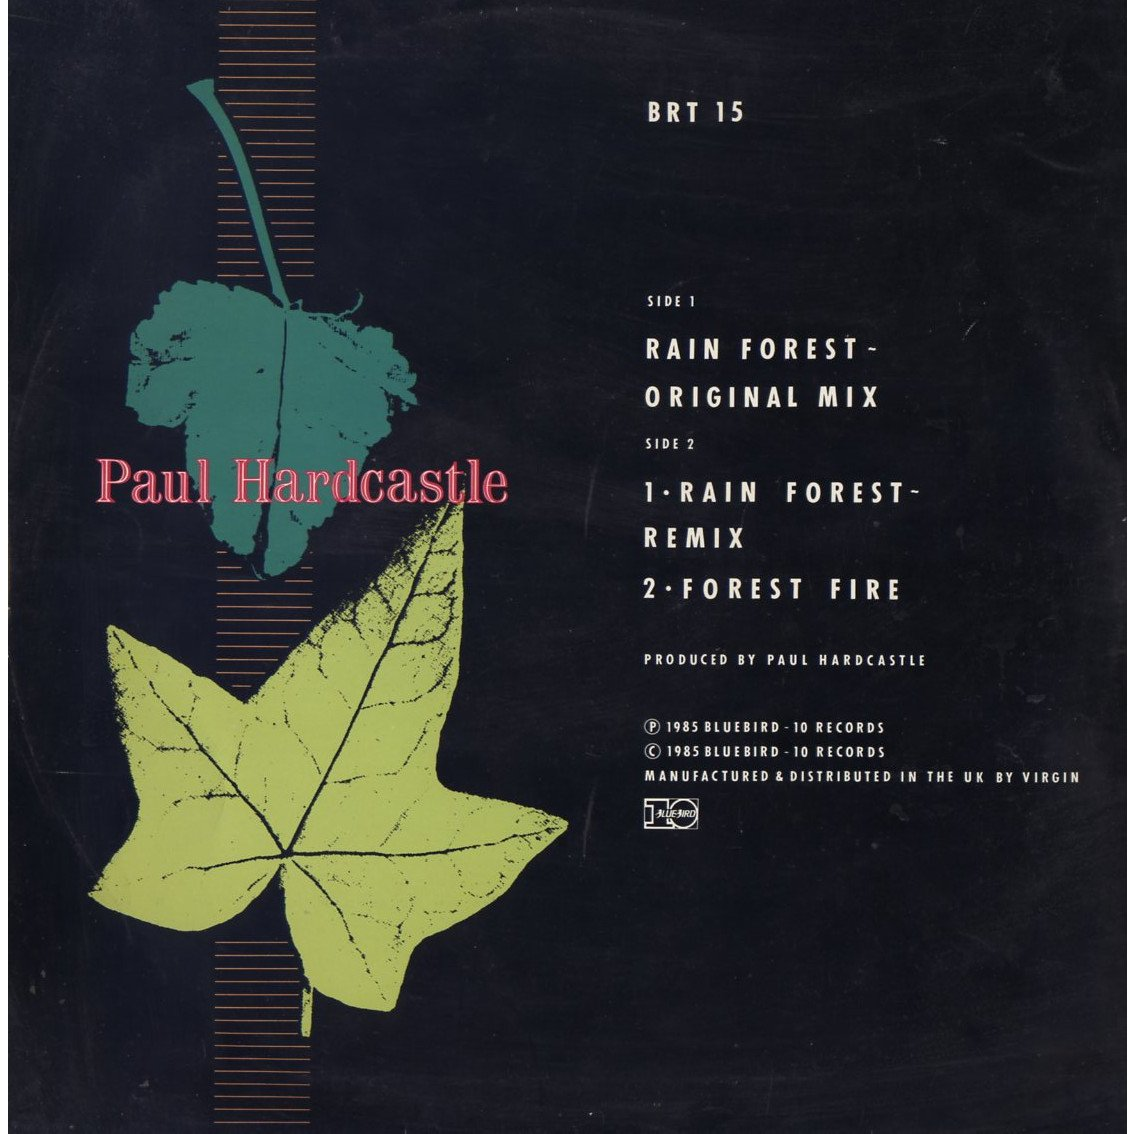 hardcastle, paul rain forest oriiginal mixb/ rain forest remix - forest fire